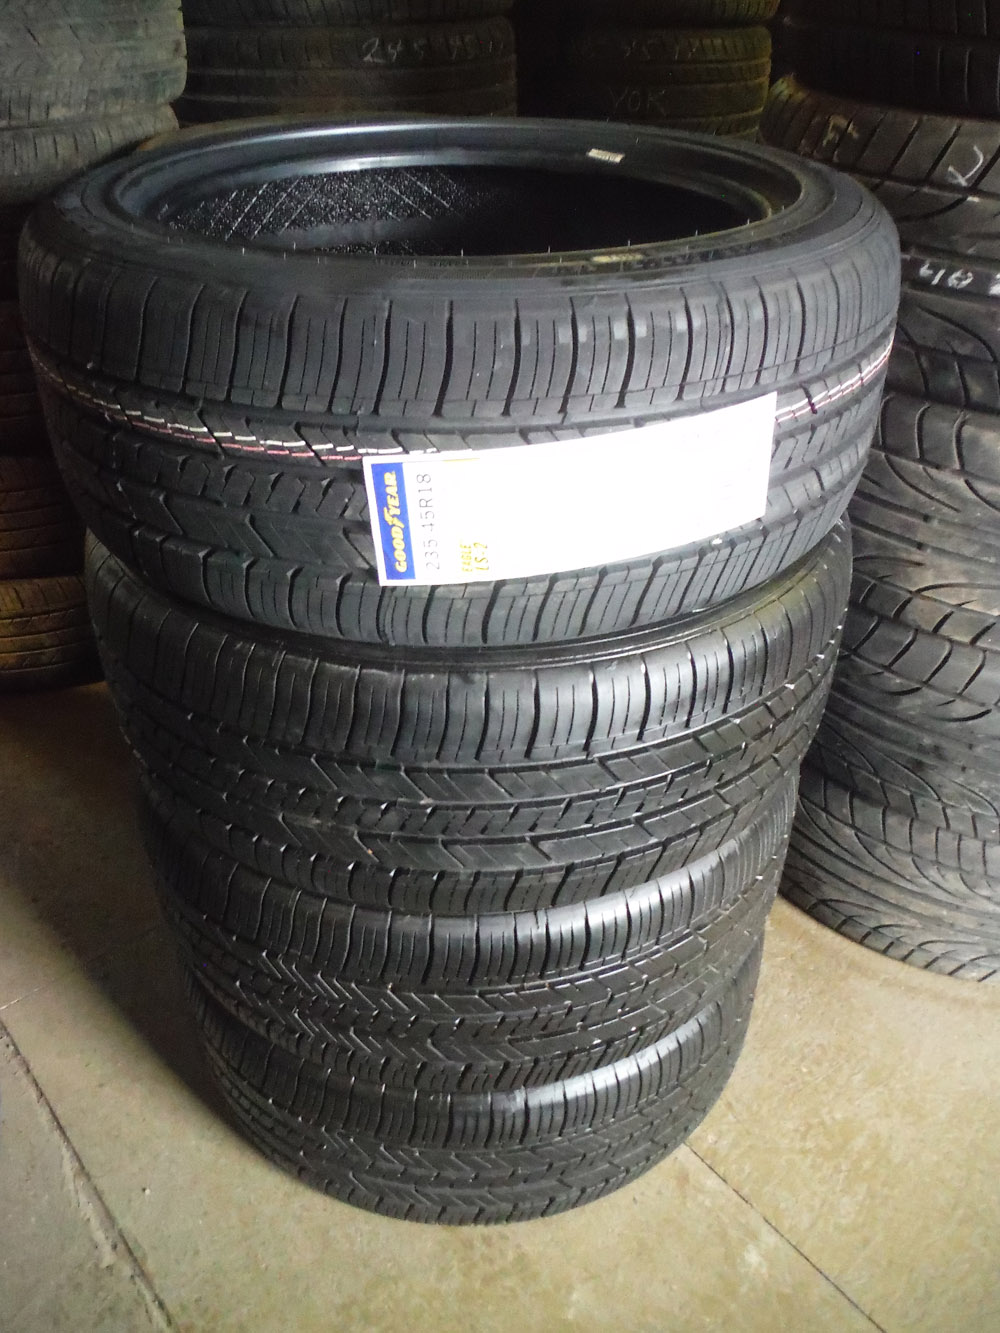 Goodyear 235/45R18 tires for sale